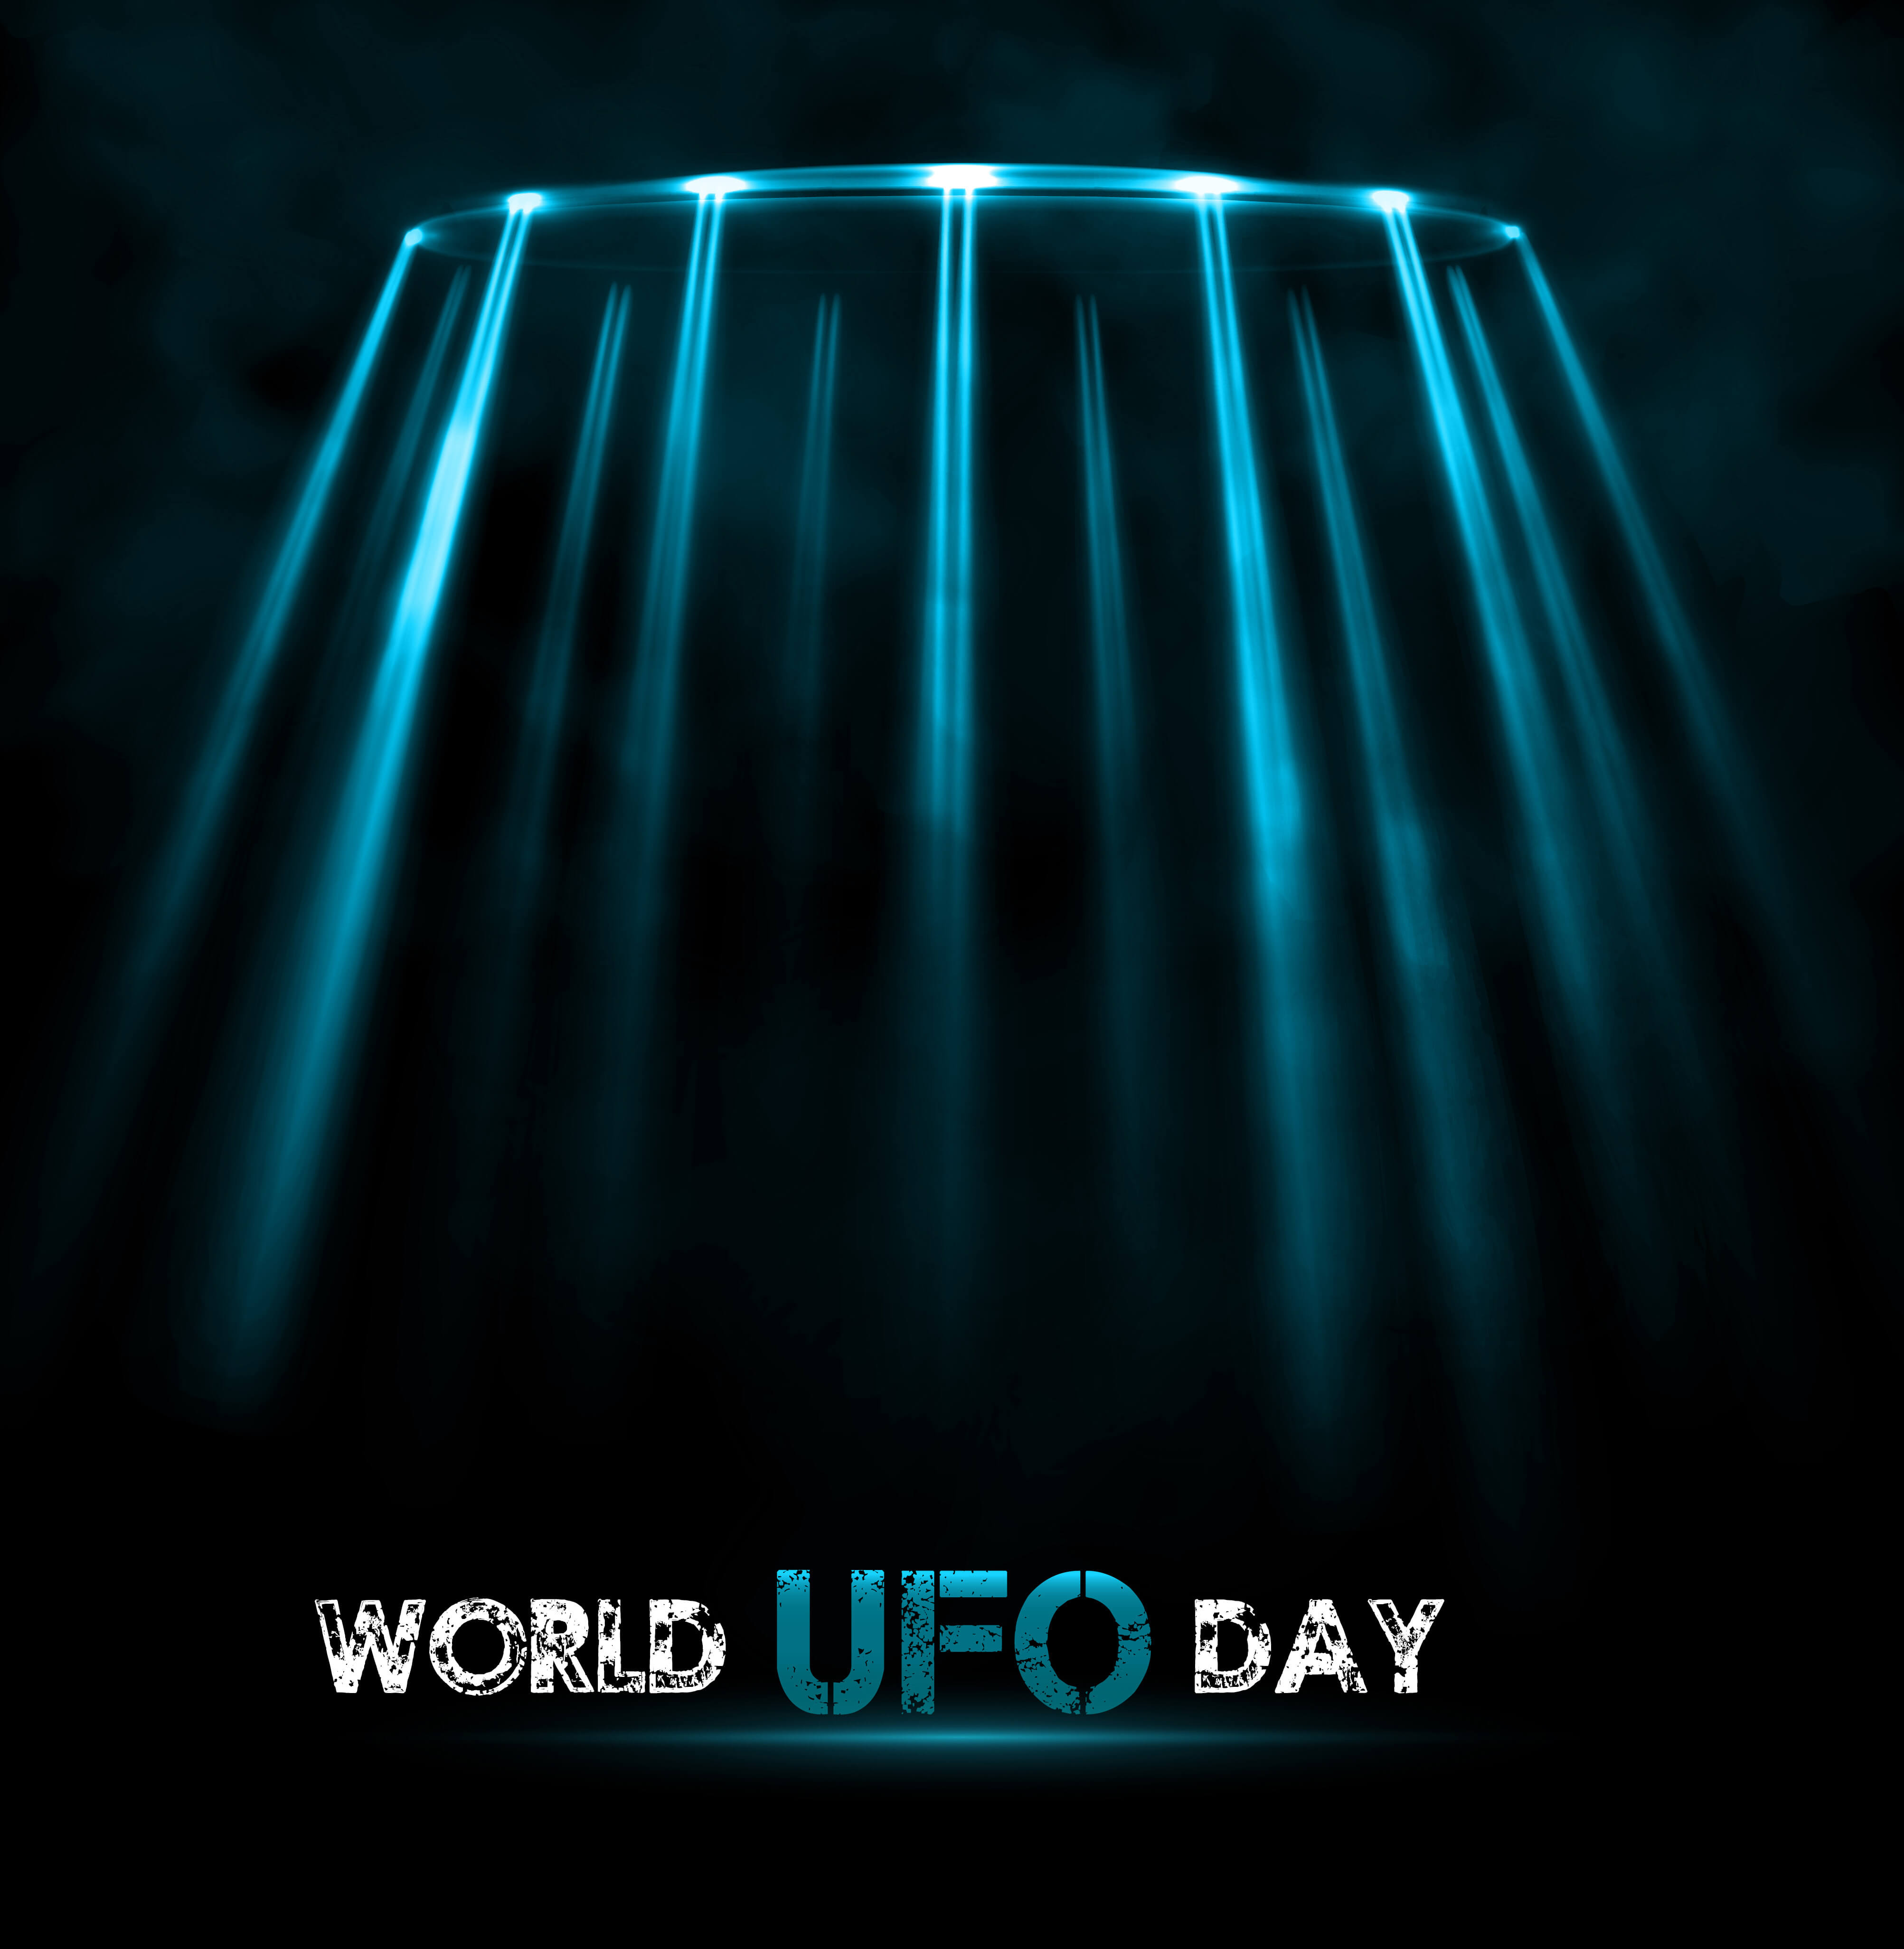 world ufo day unidentified flying object saucer hd wallpaper